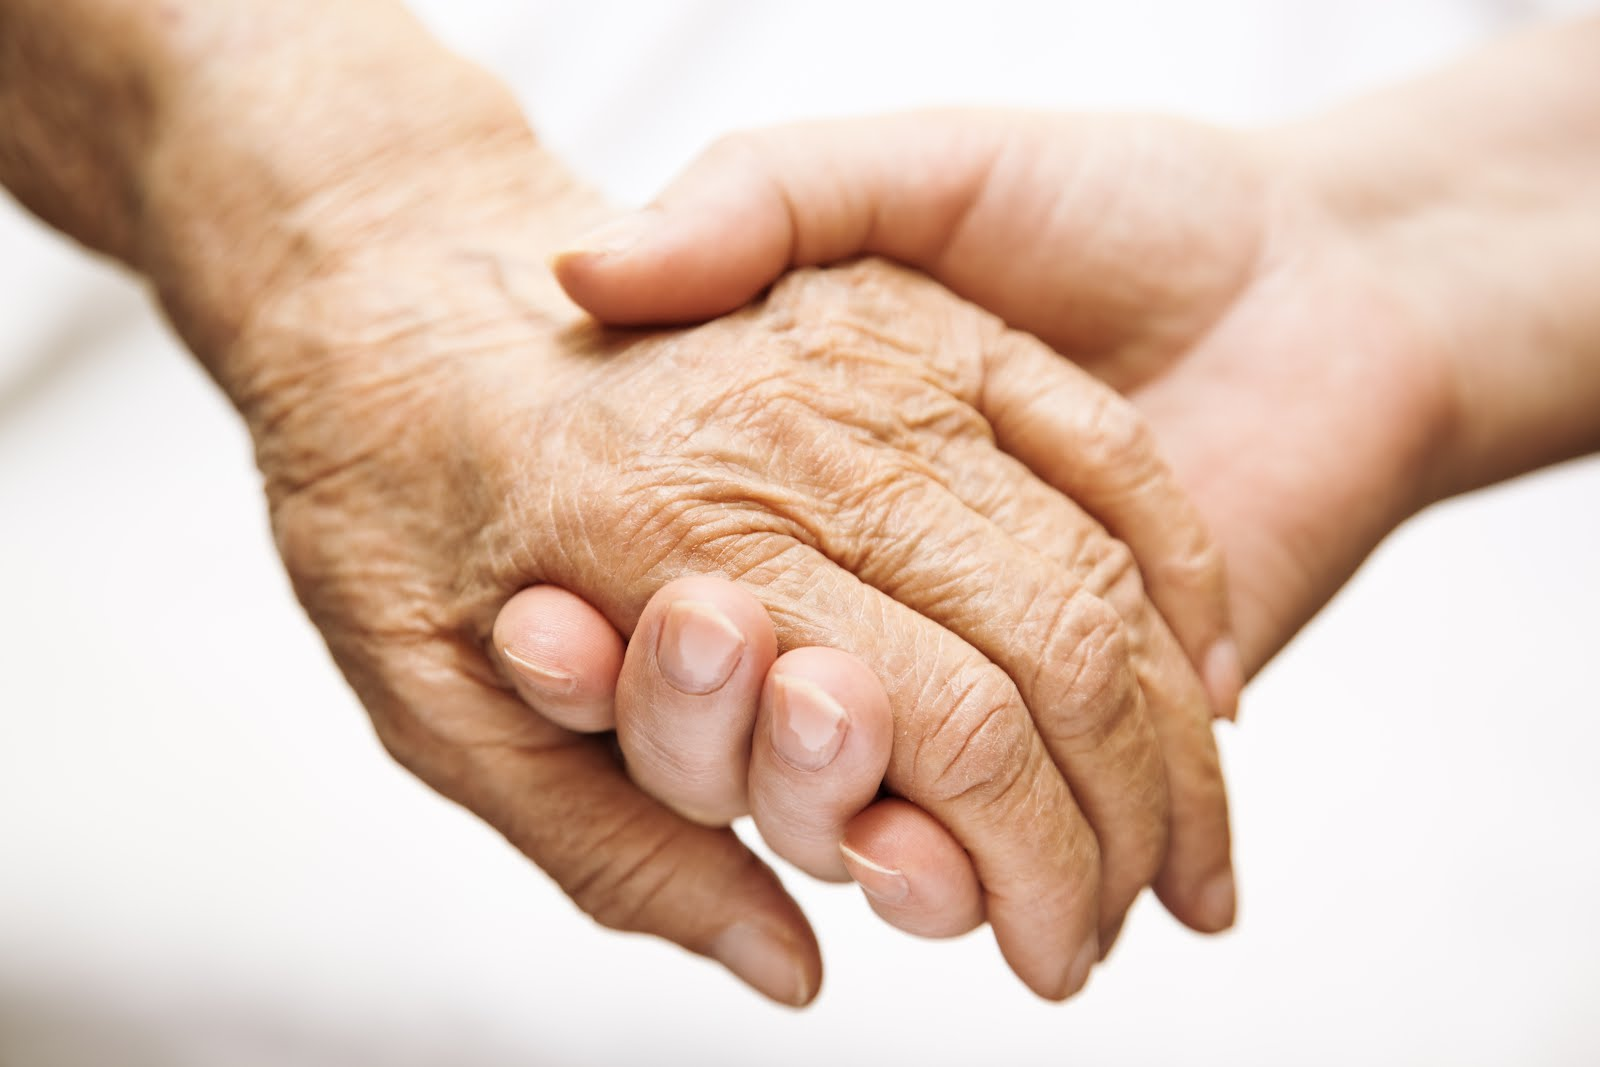 4 Tips for People Caring for Aging Parents